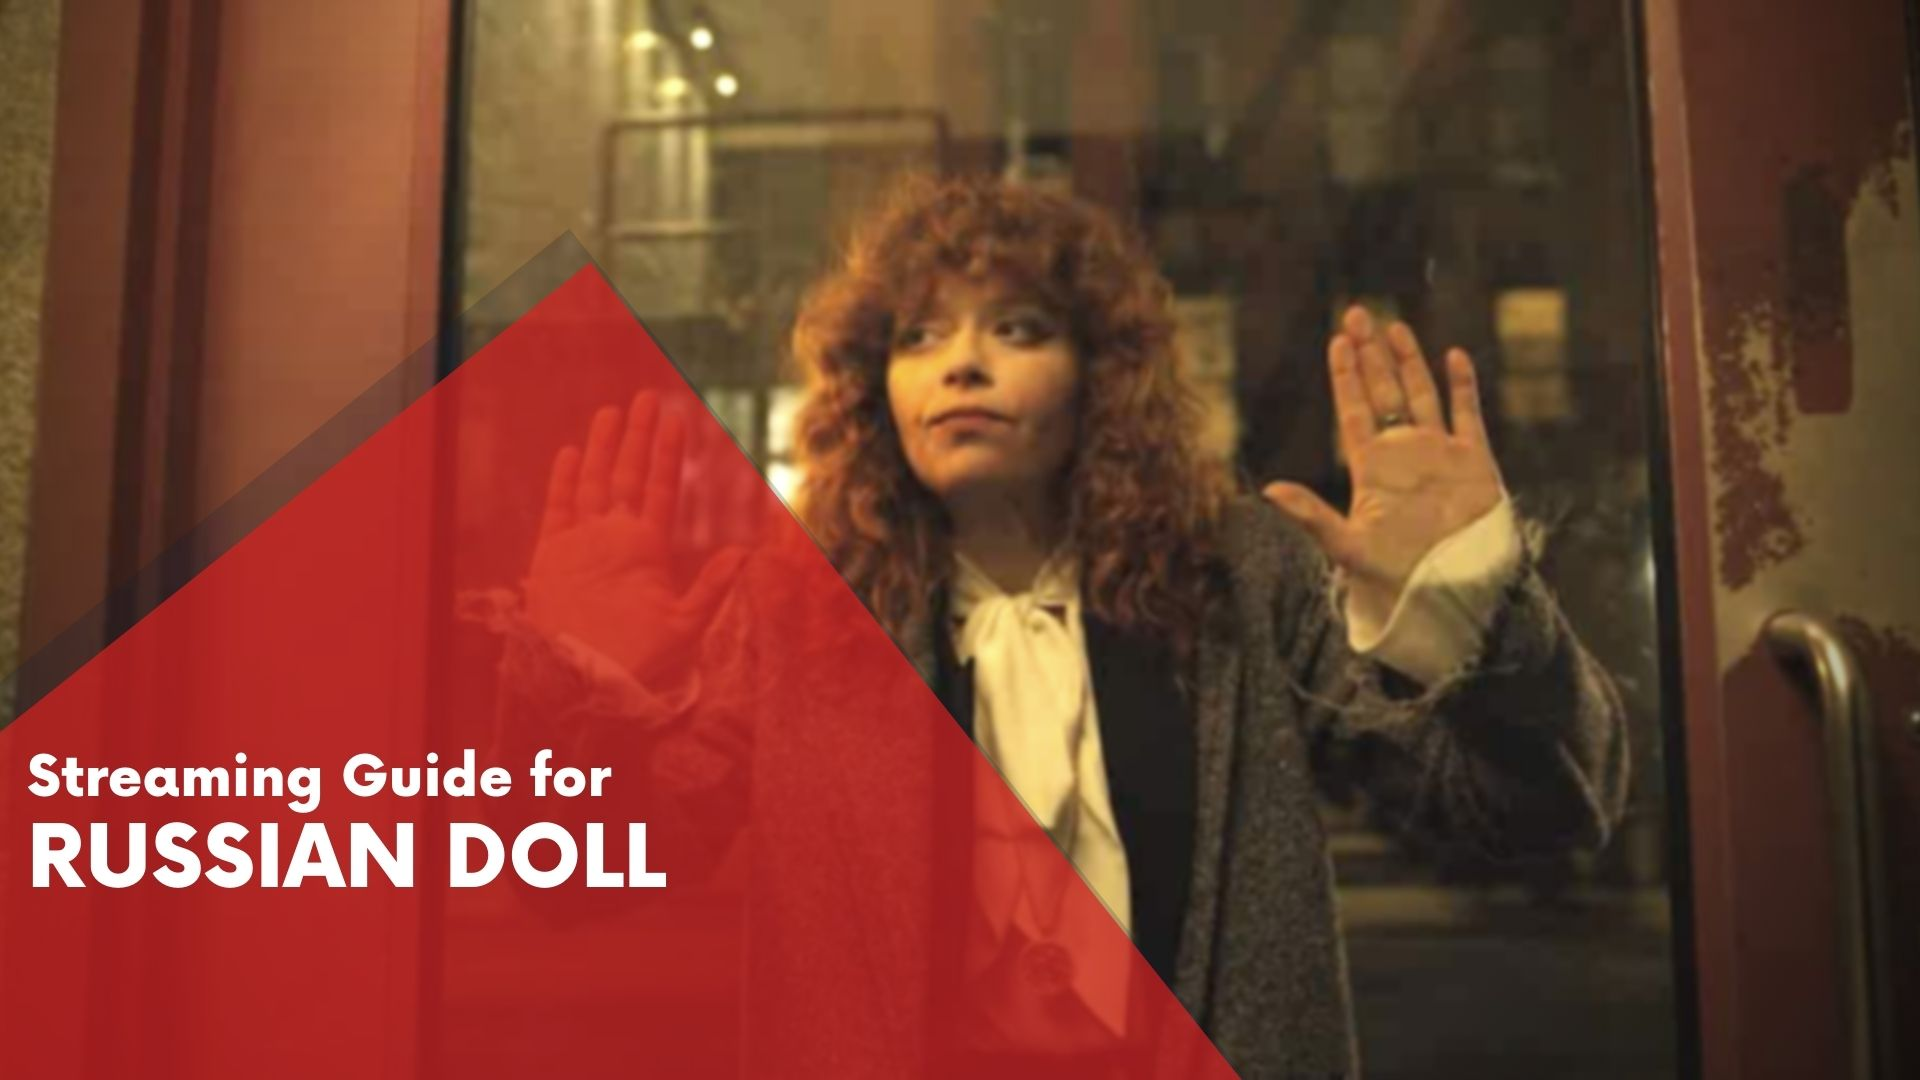 Answering if Russian Doll is available on Hulu